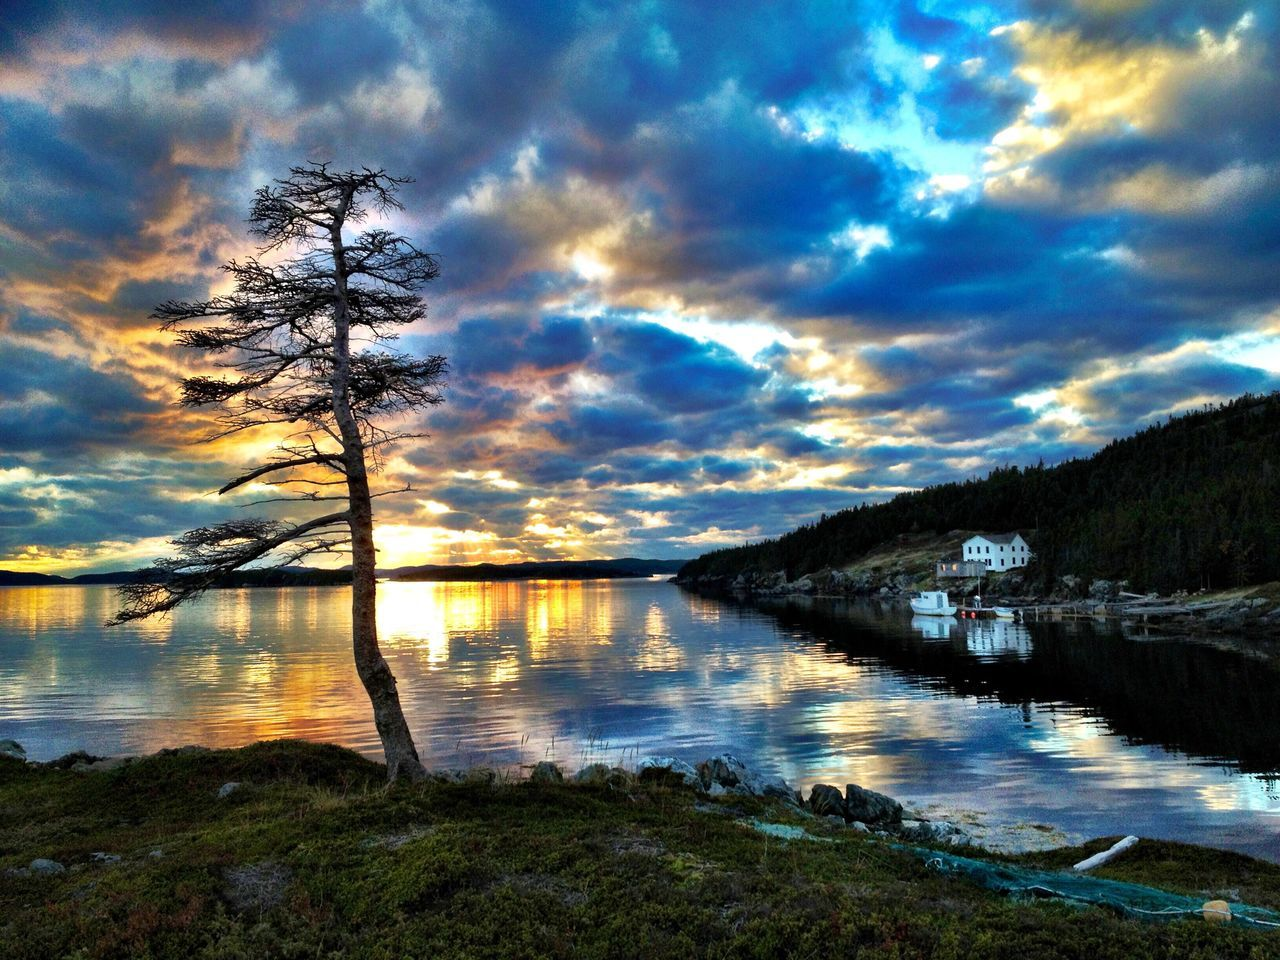 Perfect day Water Reflection Sky Nature Beauty In Nature Cloud - Sky Lake Scenics Tree Tranquil Scene Tranquility Sunset No People Idyllic Outdoors Clam Day Live For The Story